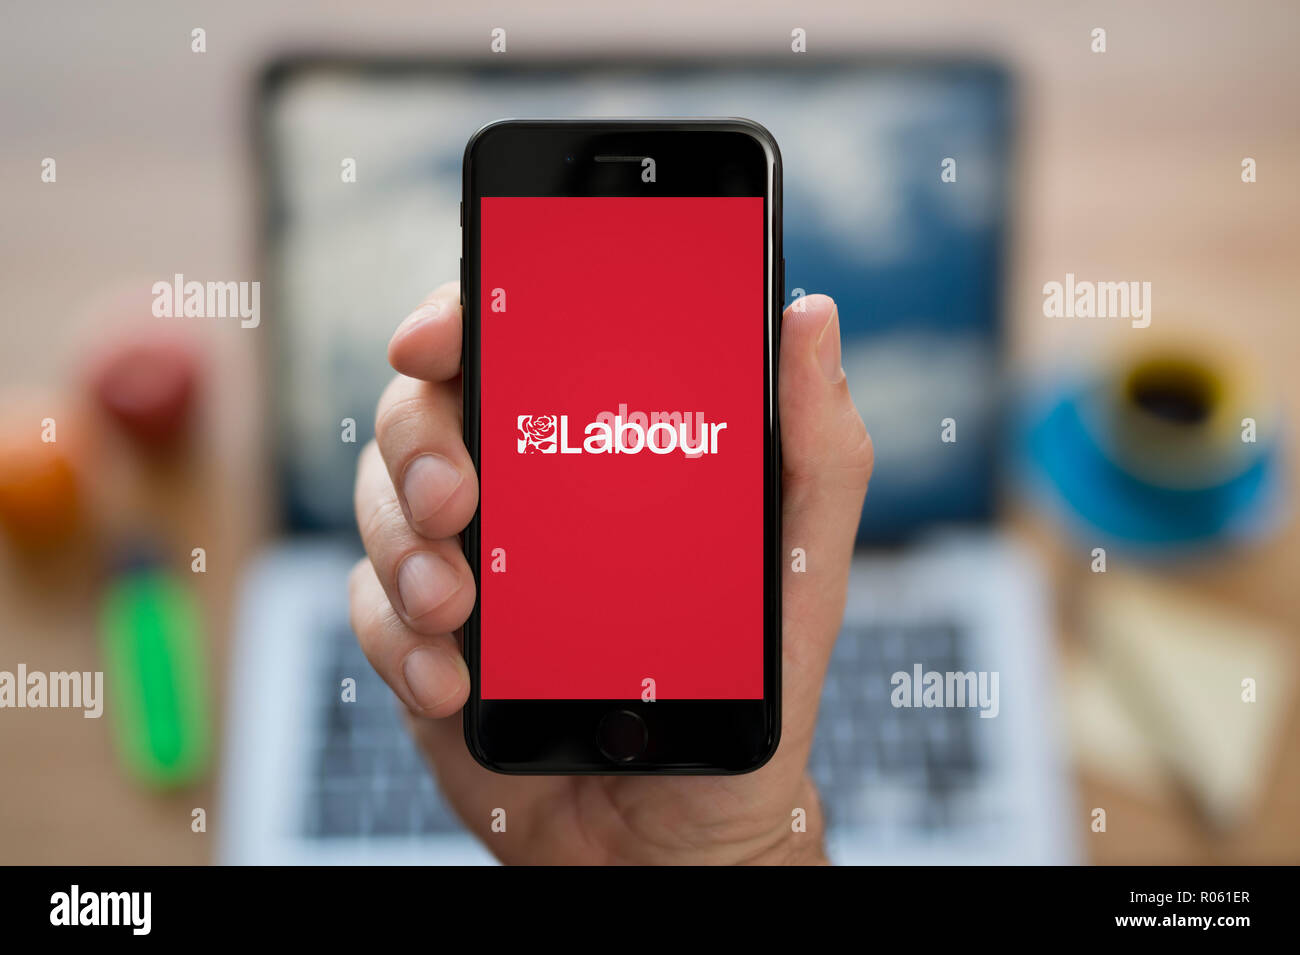 A man looks at his iPhone which displays the Labour Party logo, while sat at his computer desk (Editorial use only). - Stock Image